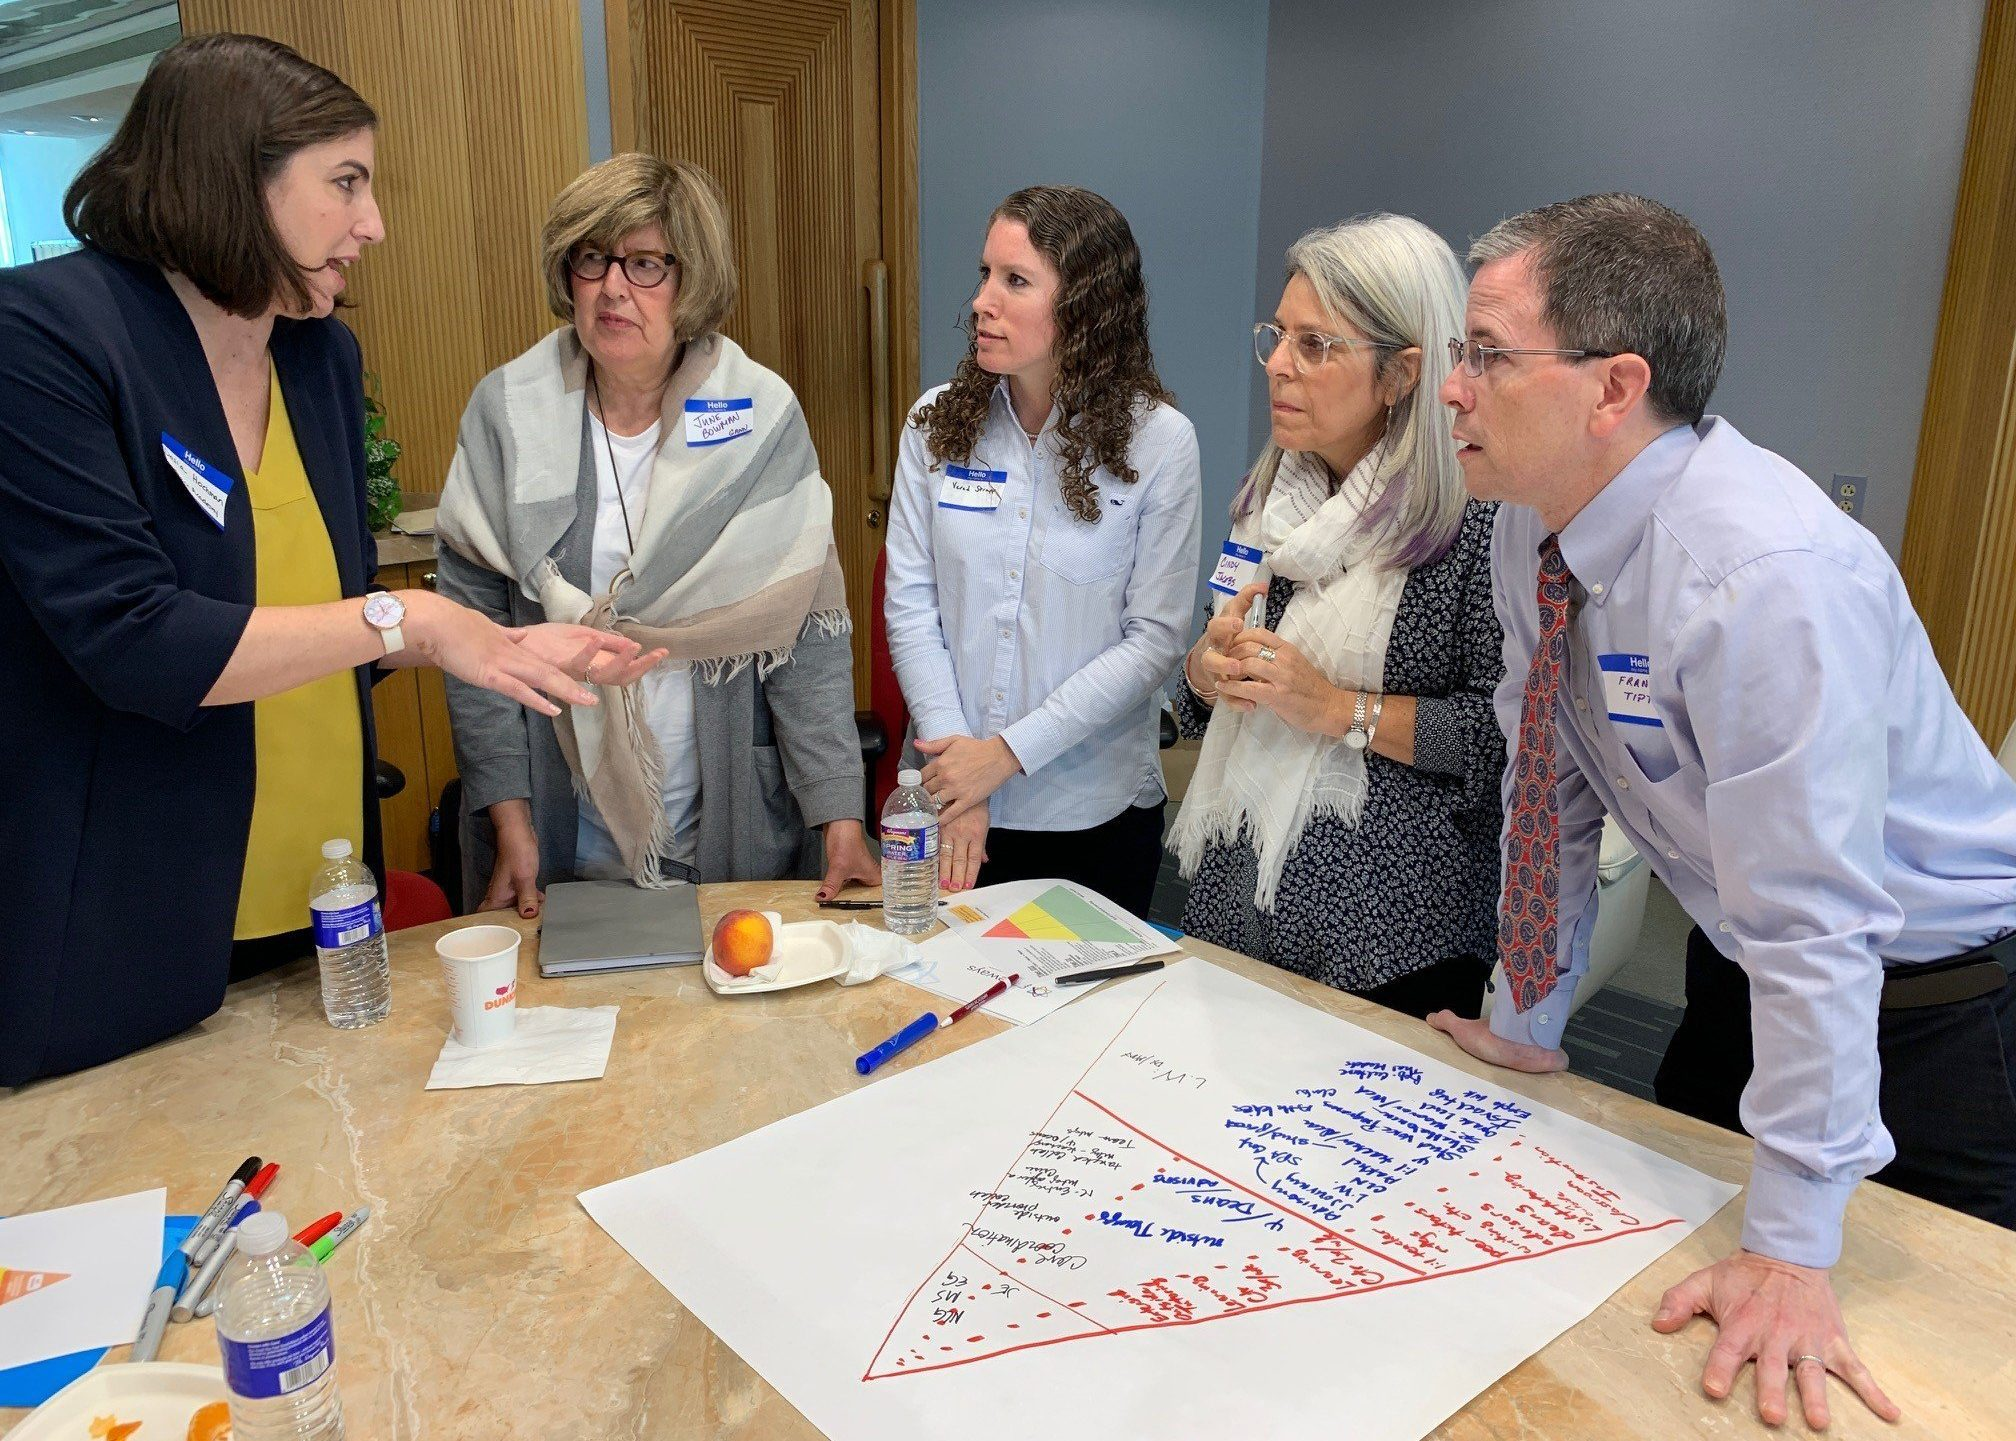 educators standing around a table and poster